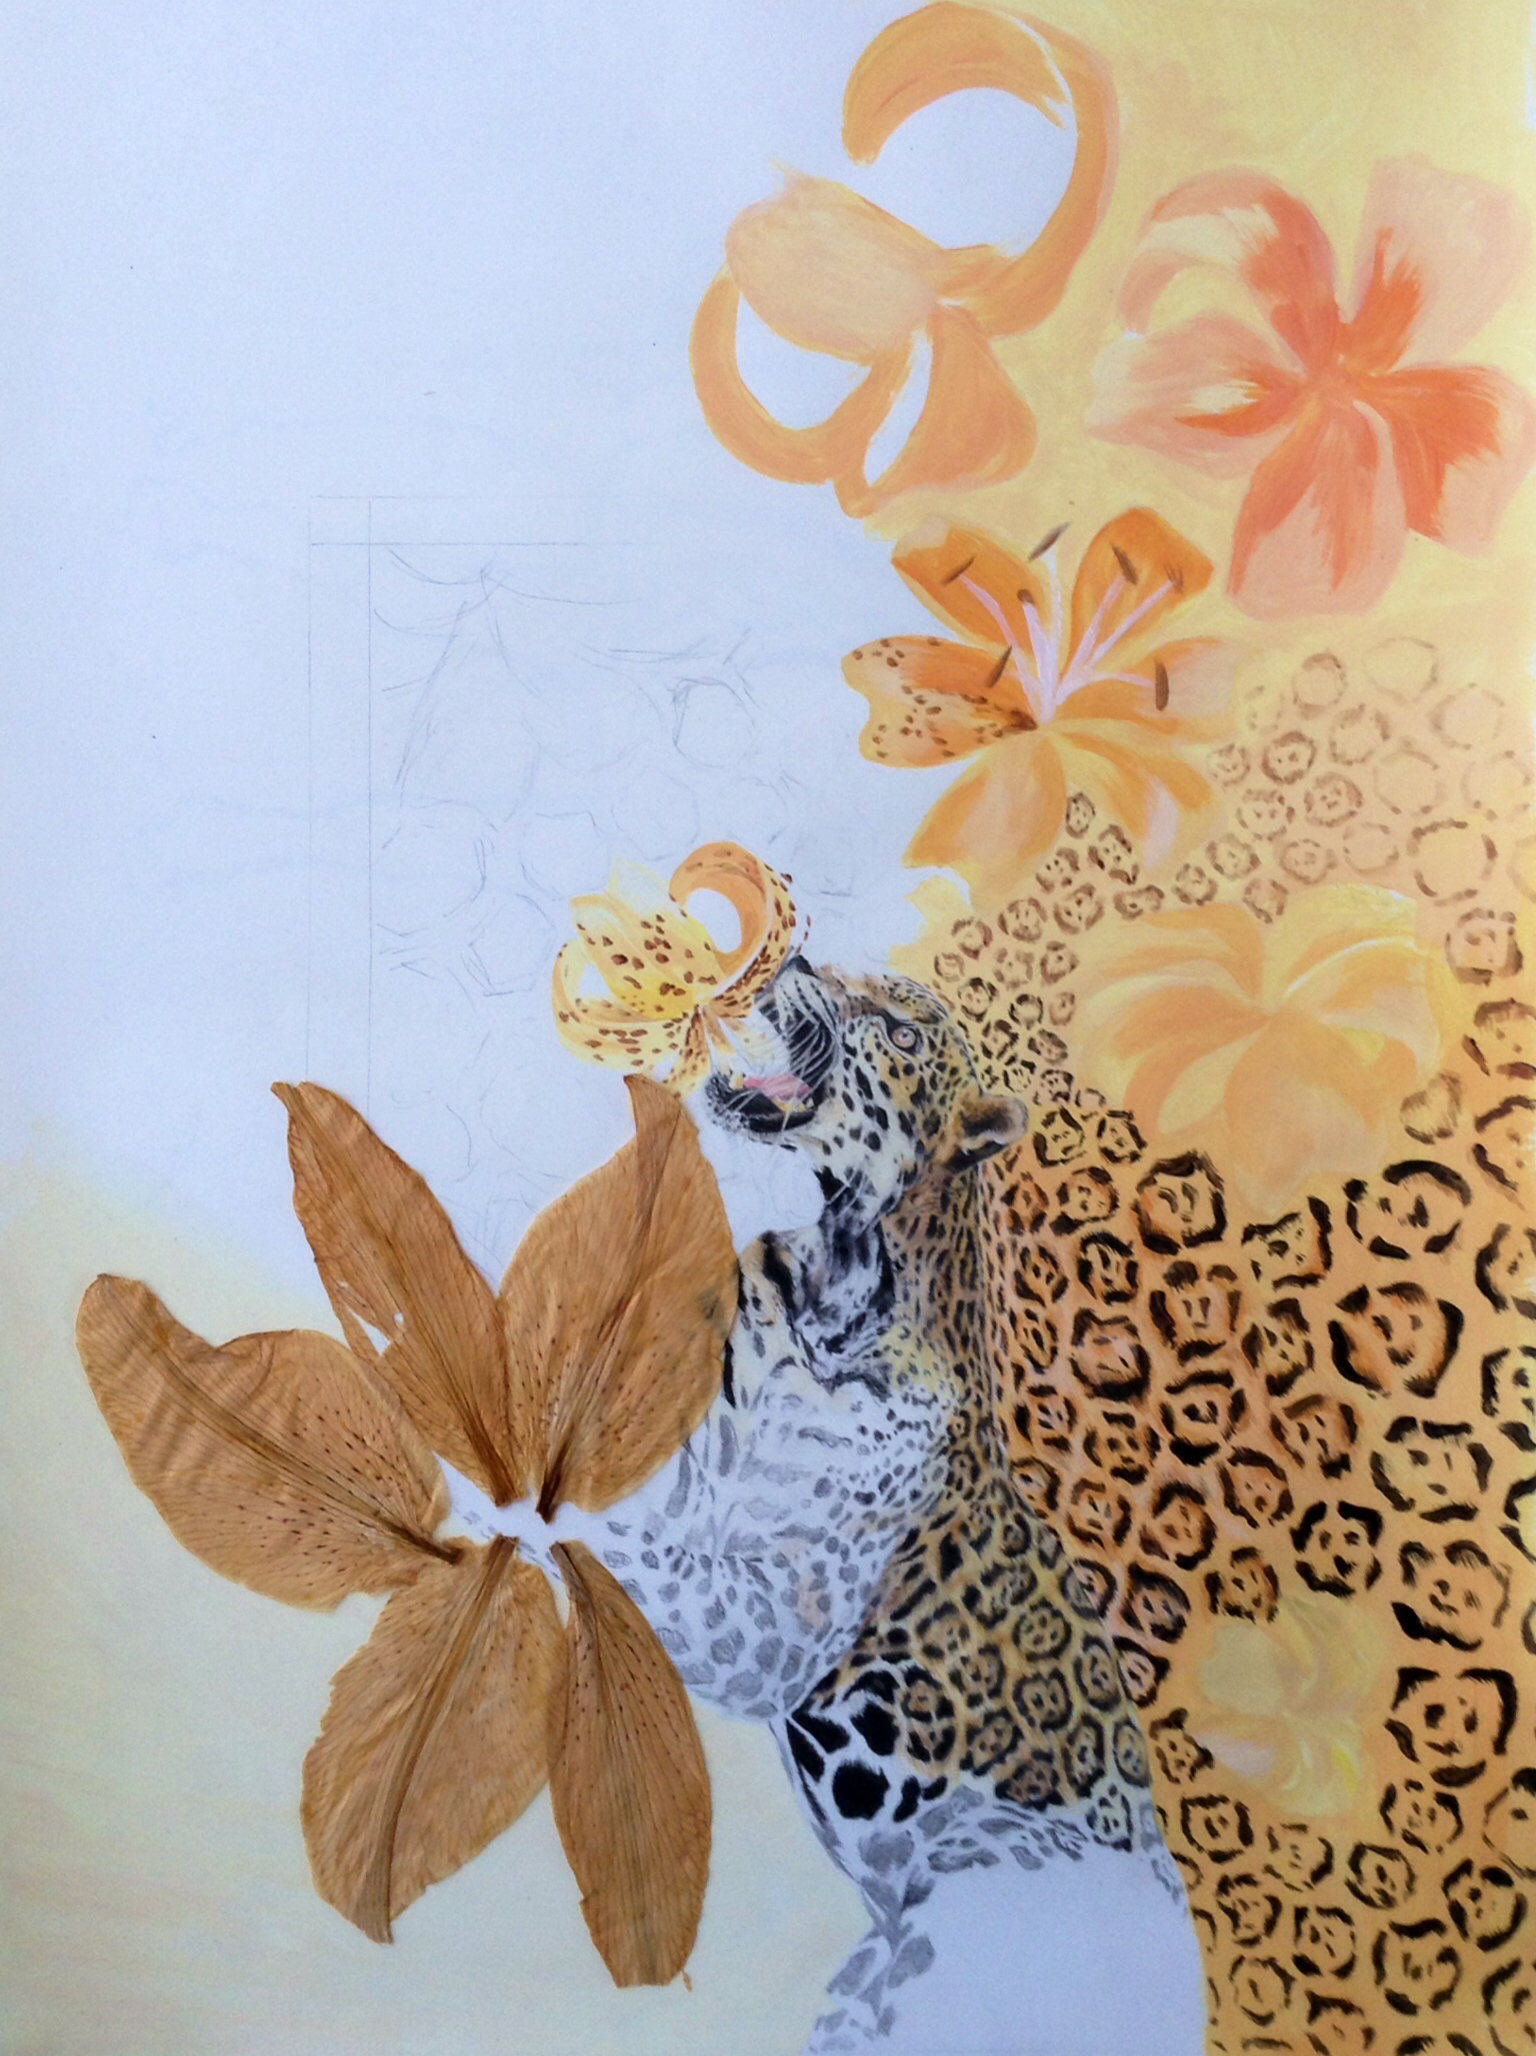 Drawn leopard skin painting Skin #work #painting progress #drawing